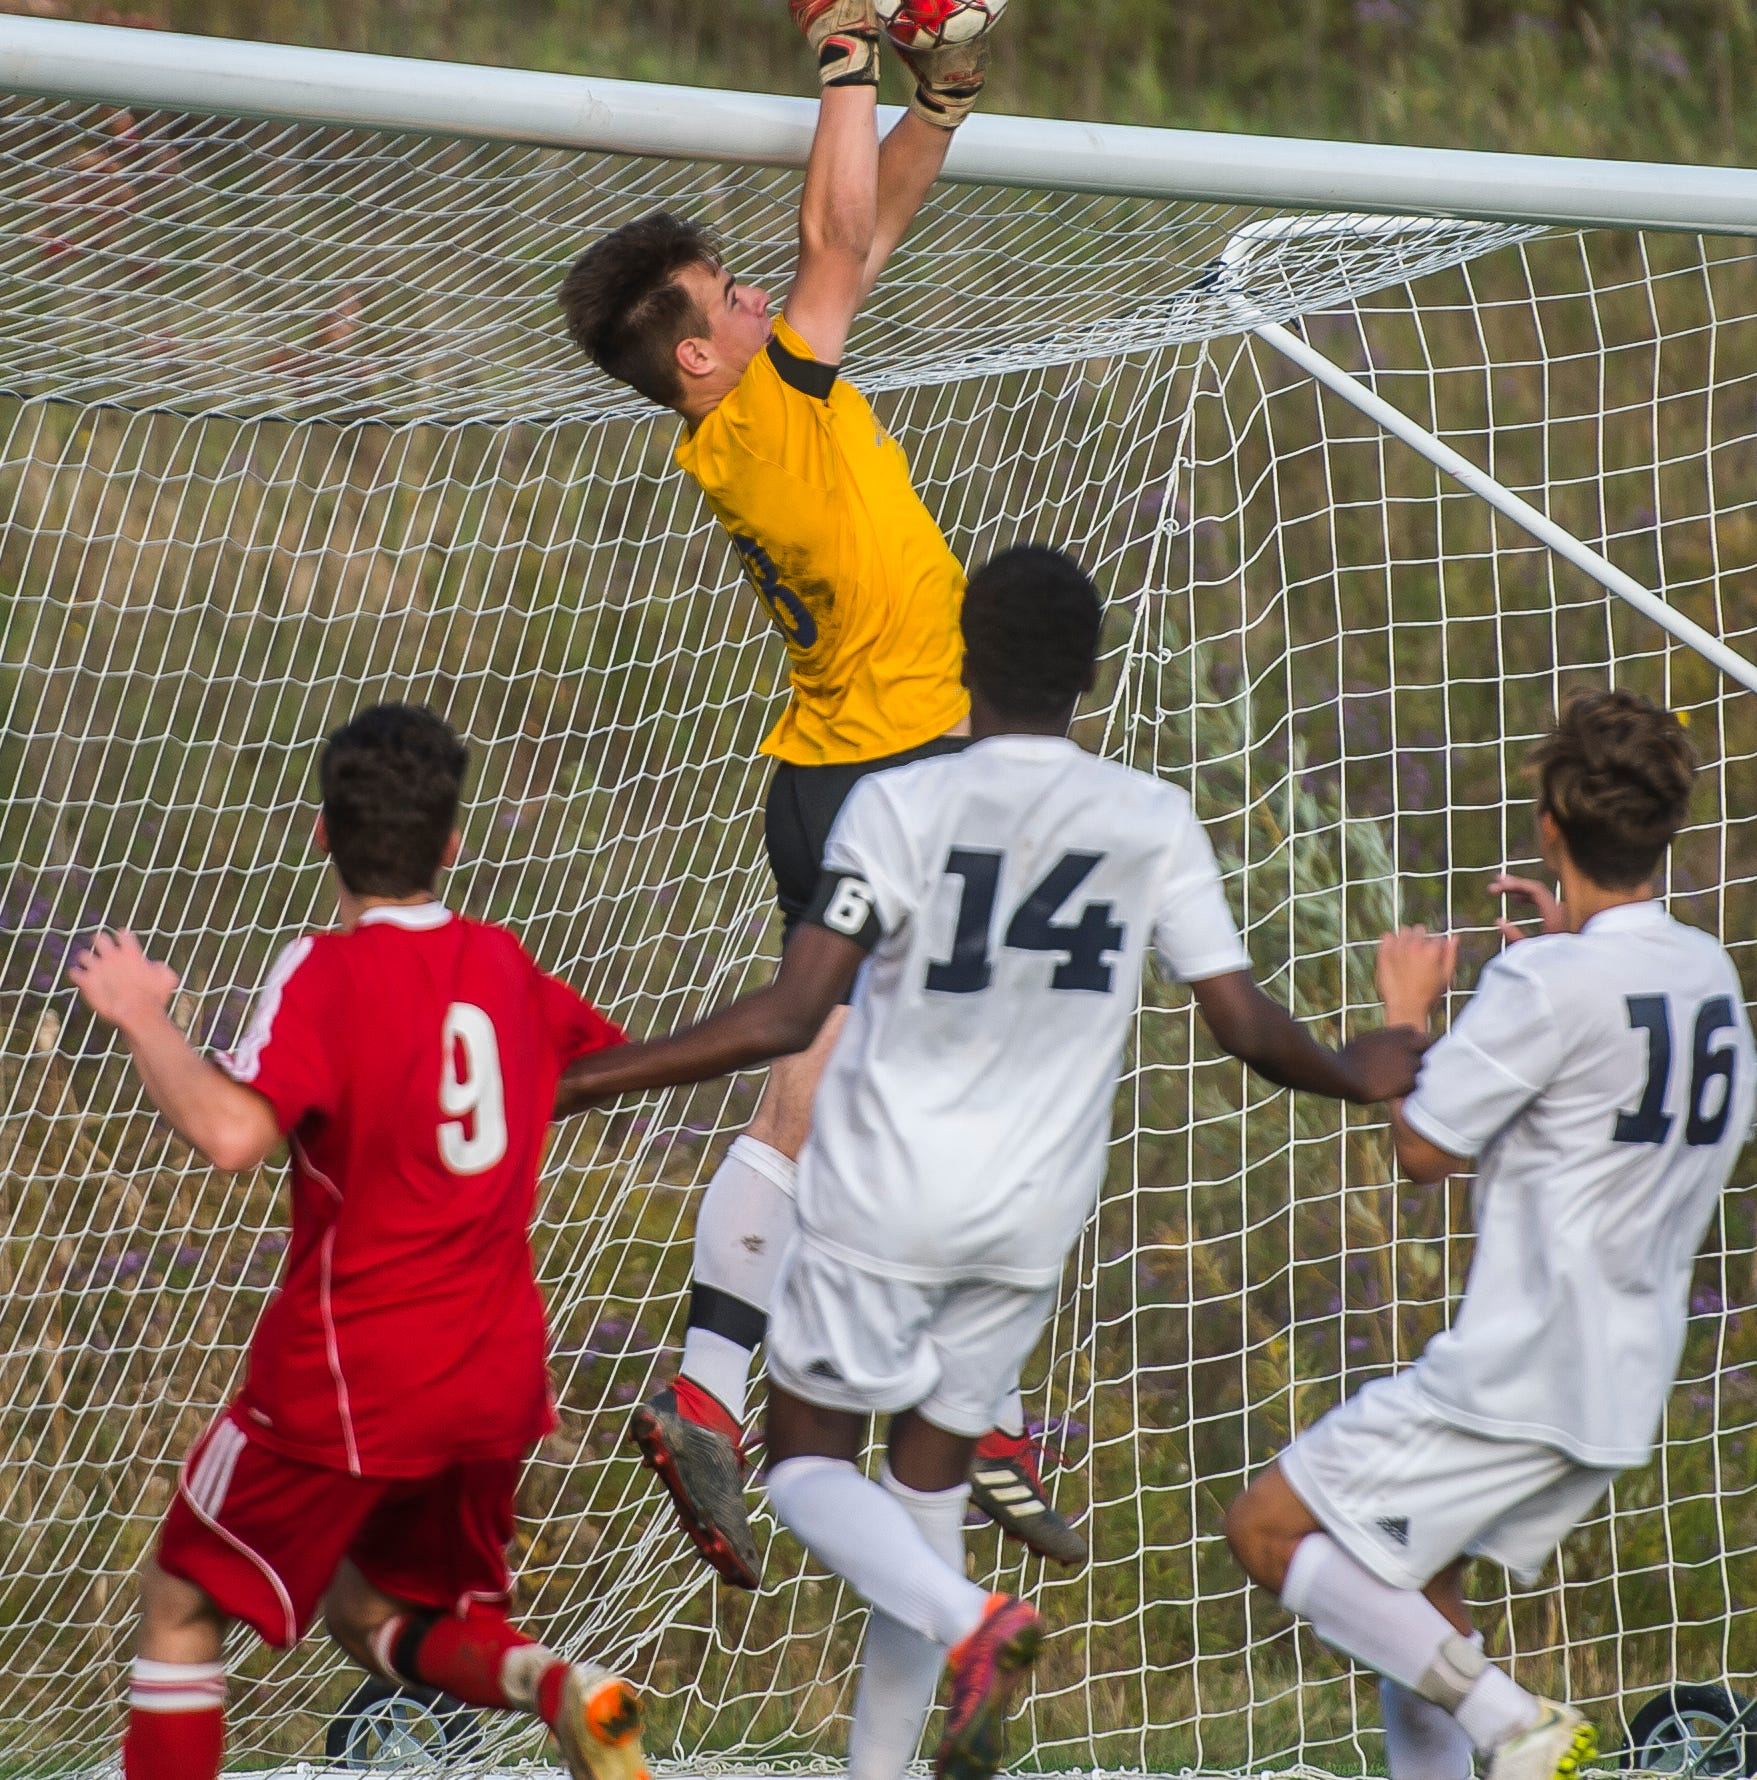 Vermont boys soccer: Week 6 power rankings